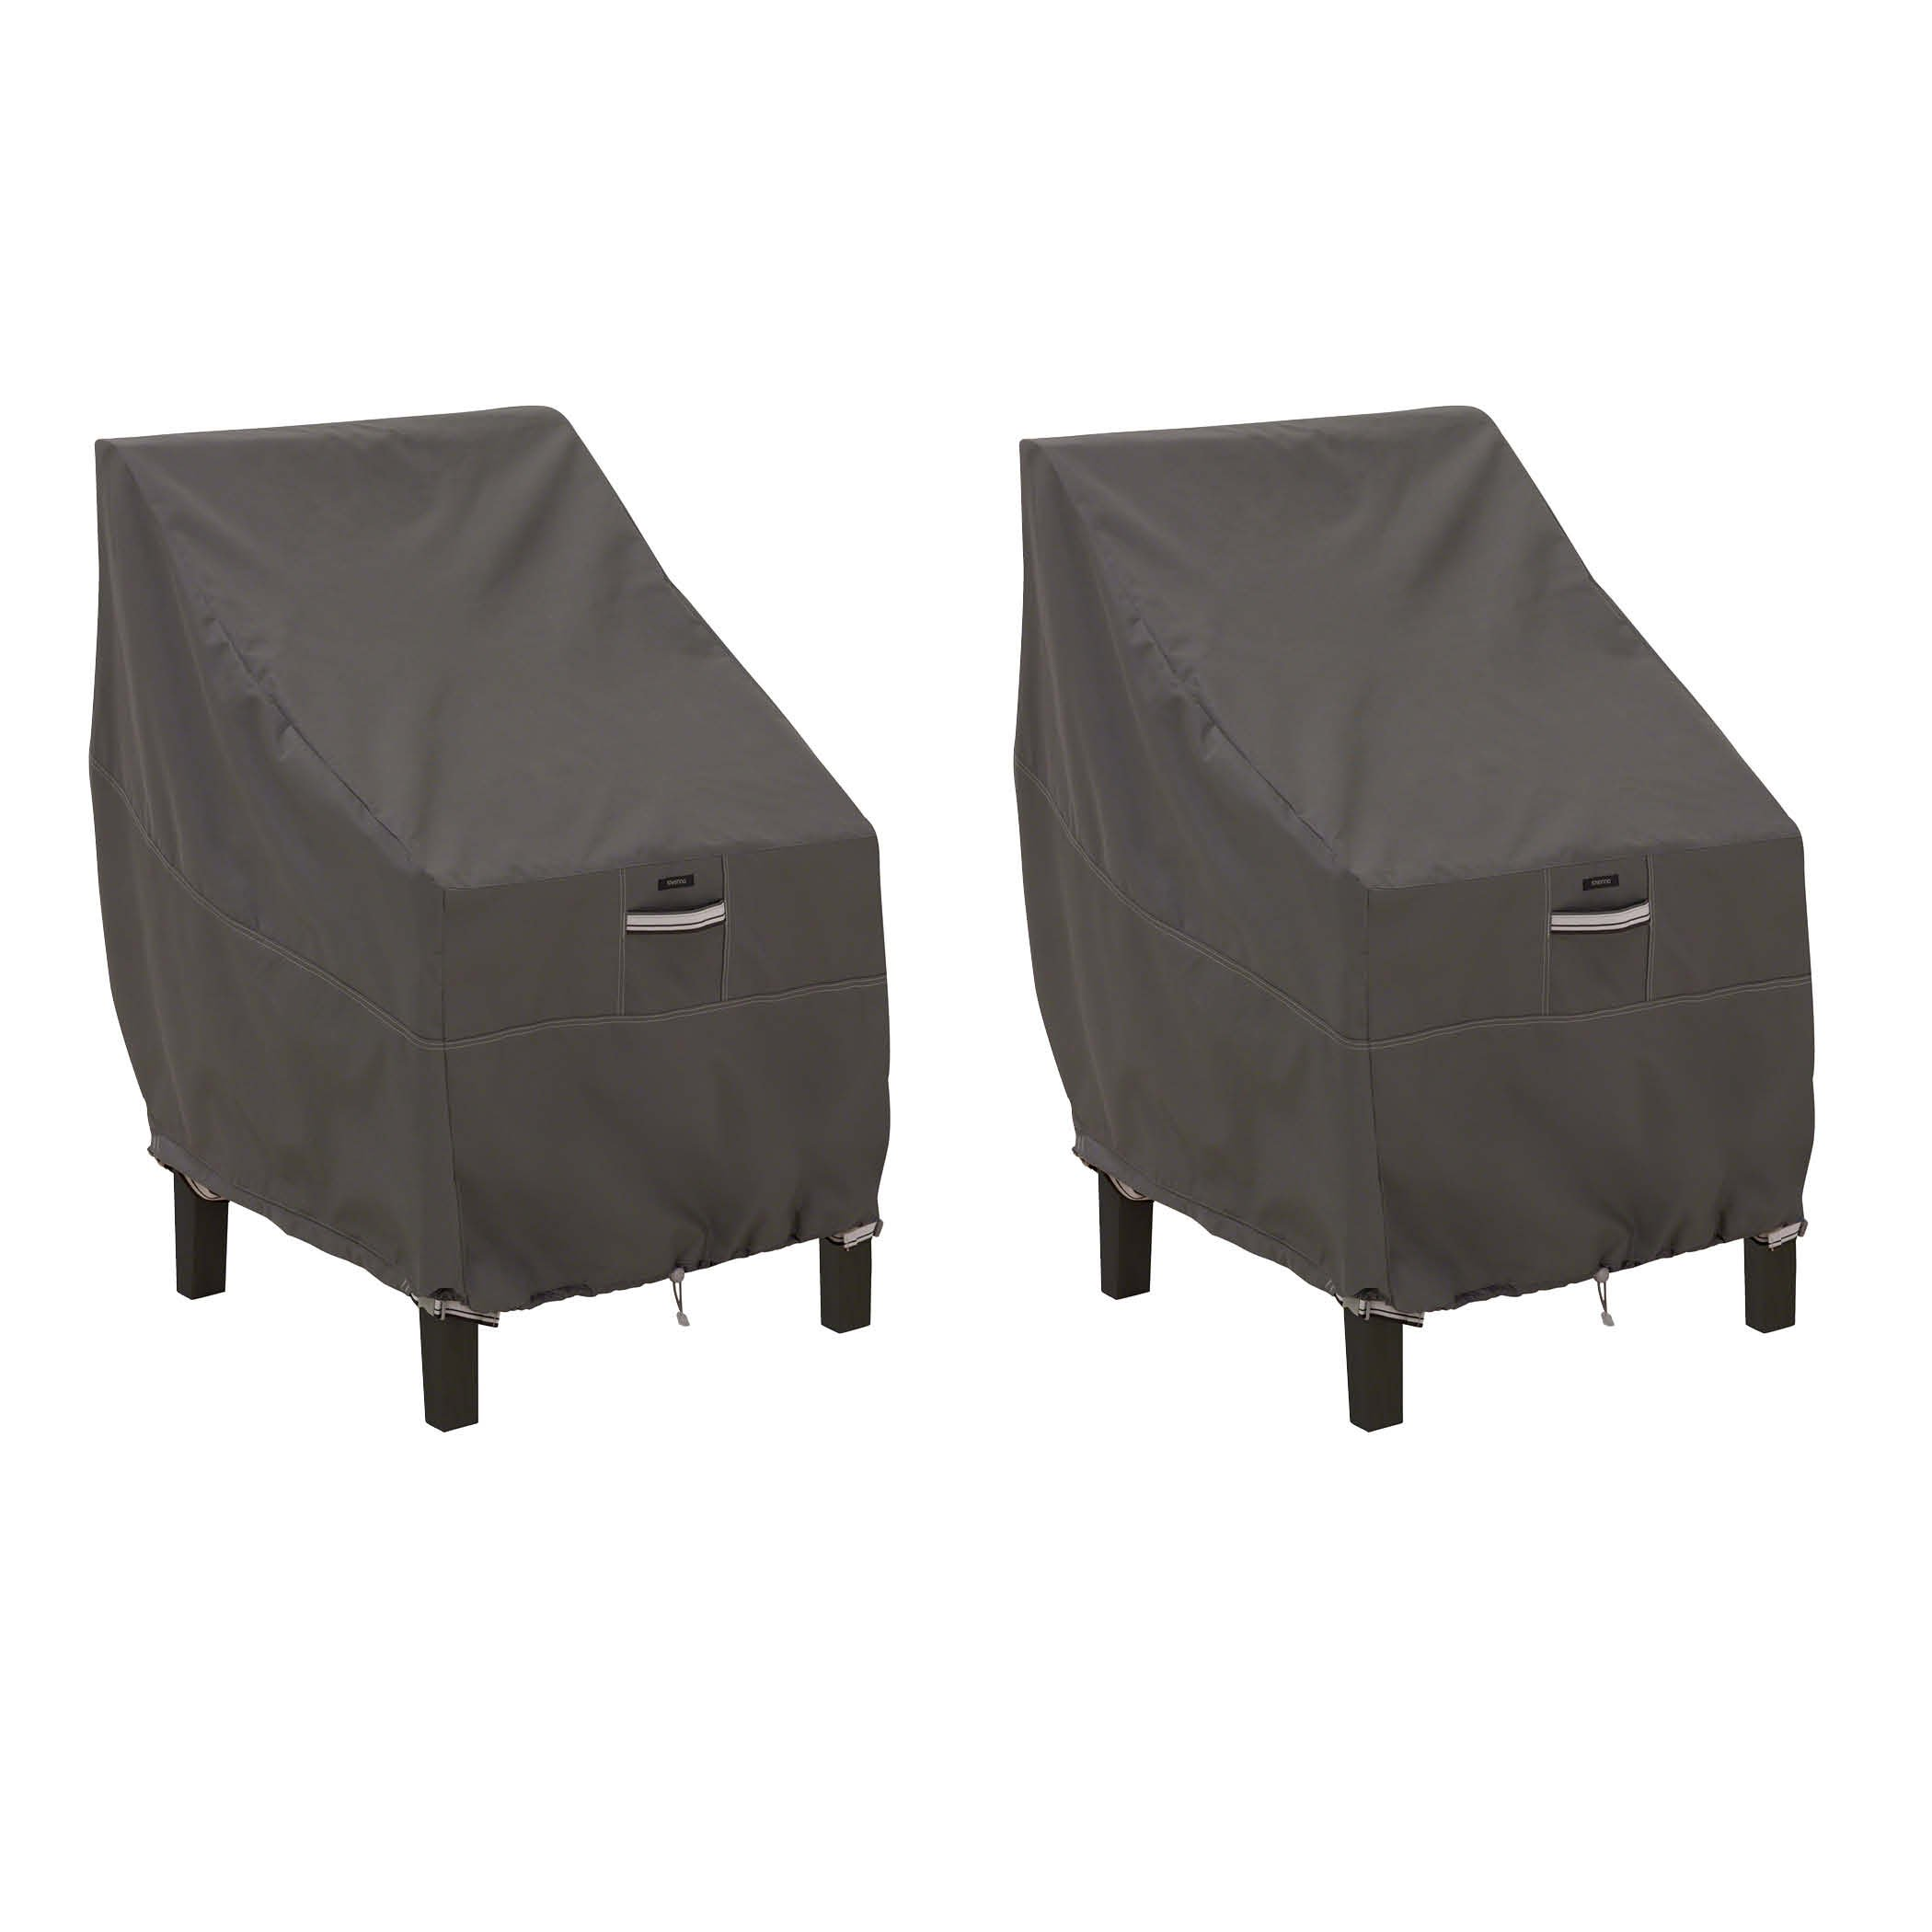 Classic Accessories 55-144-015101-2PK Ravenna High Back Dining Patio Chair Cover (2-Pack)